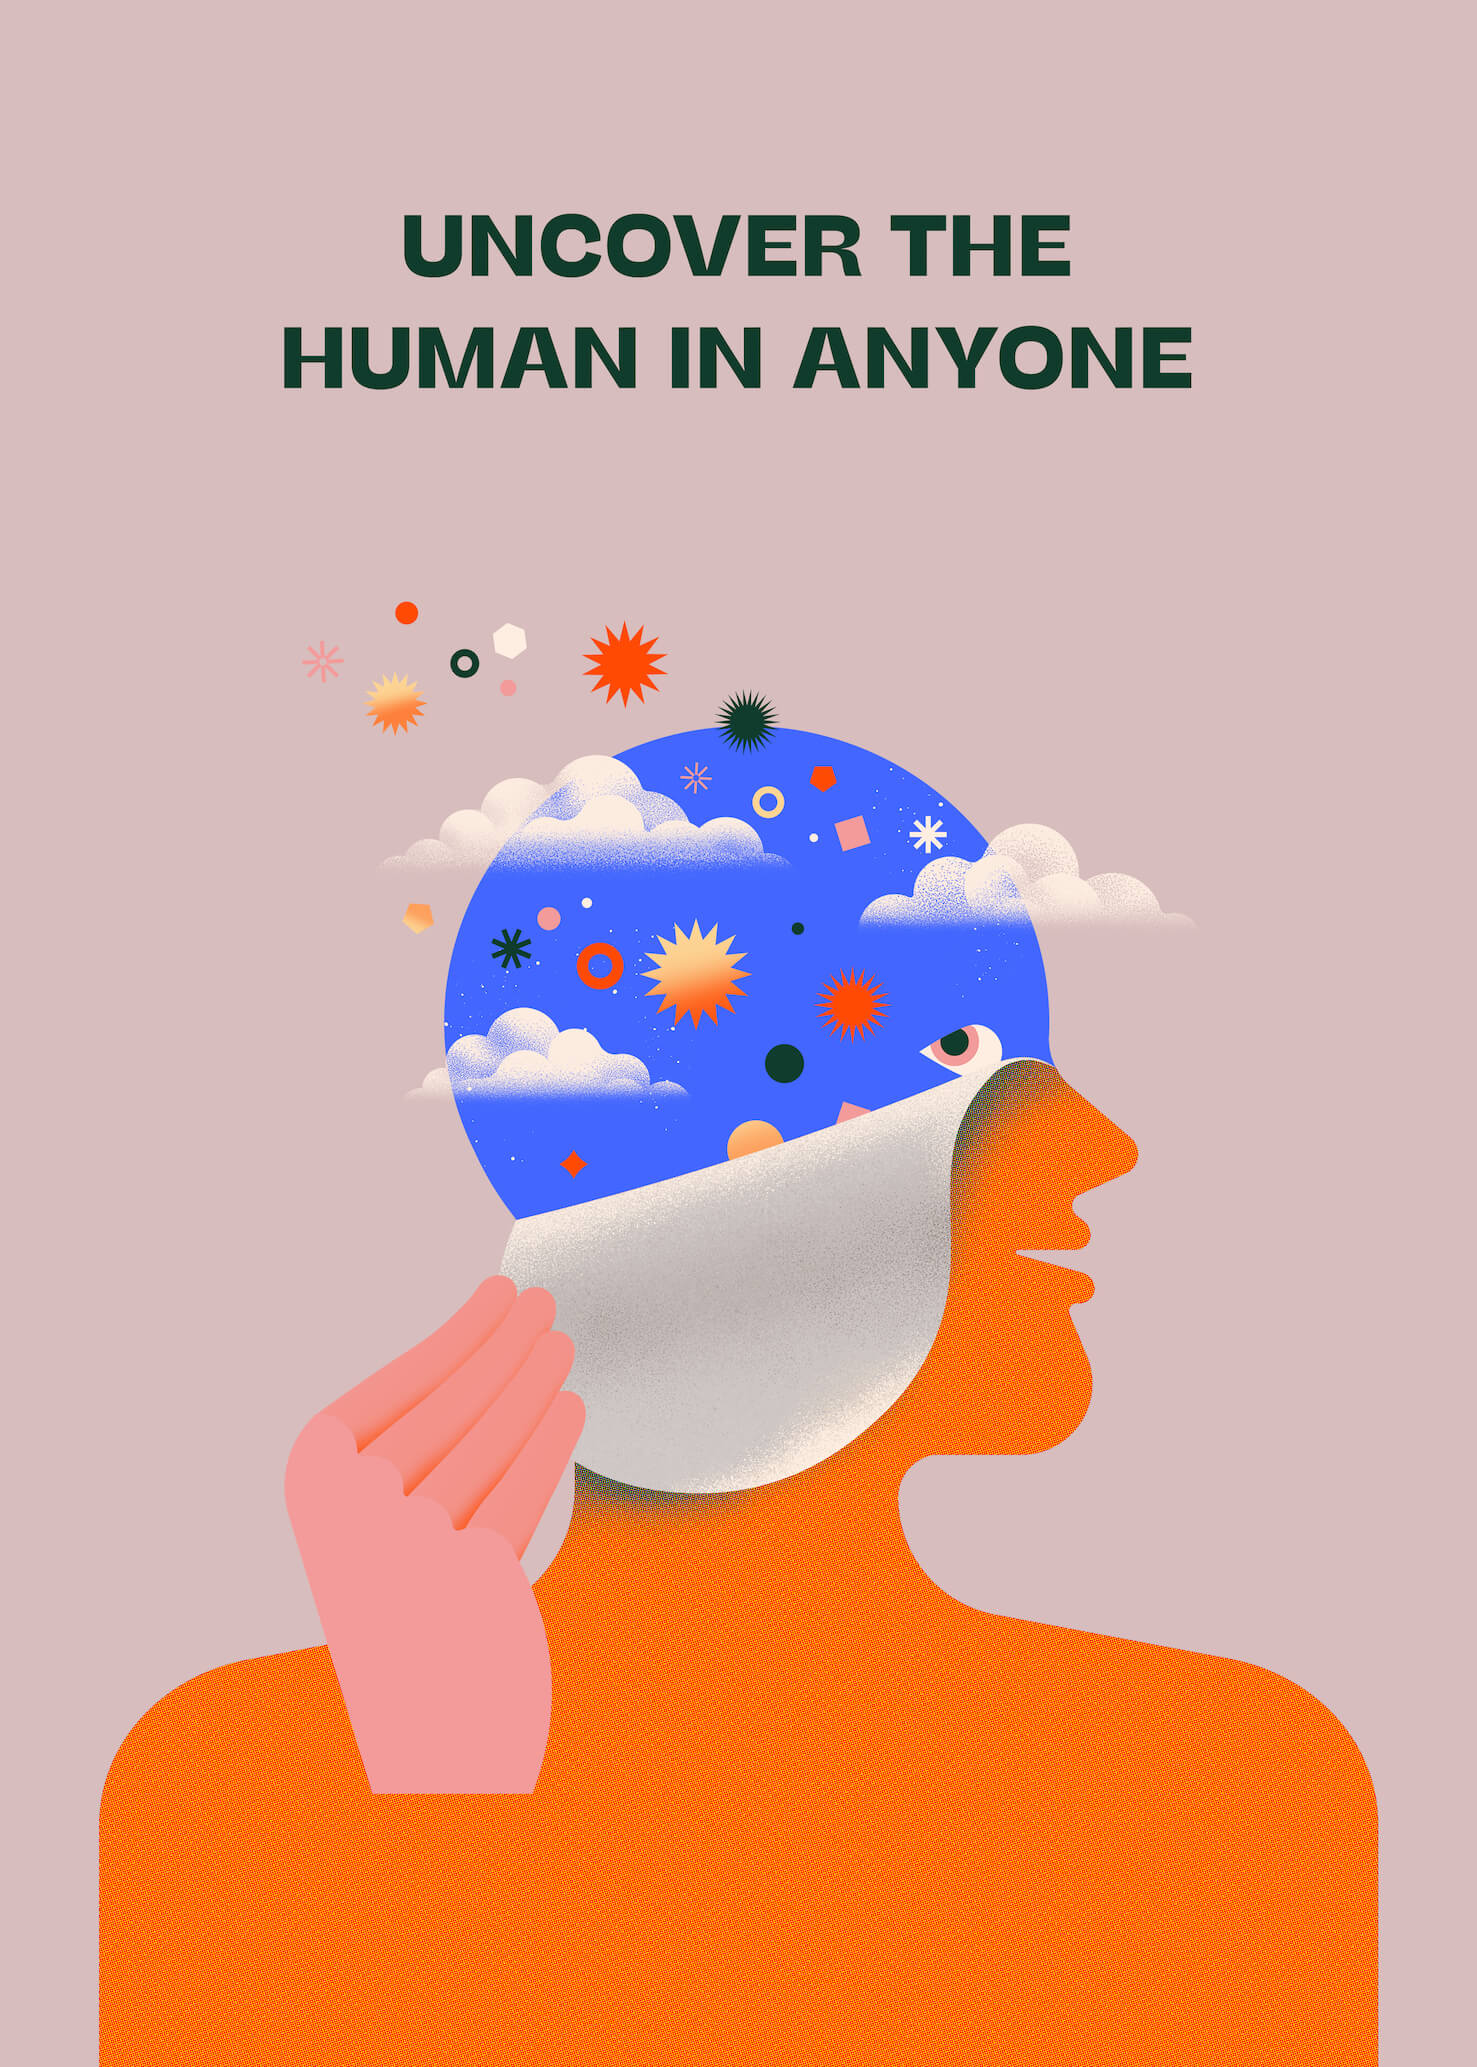 Uncover The Human In Anyone main image